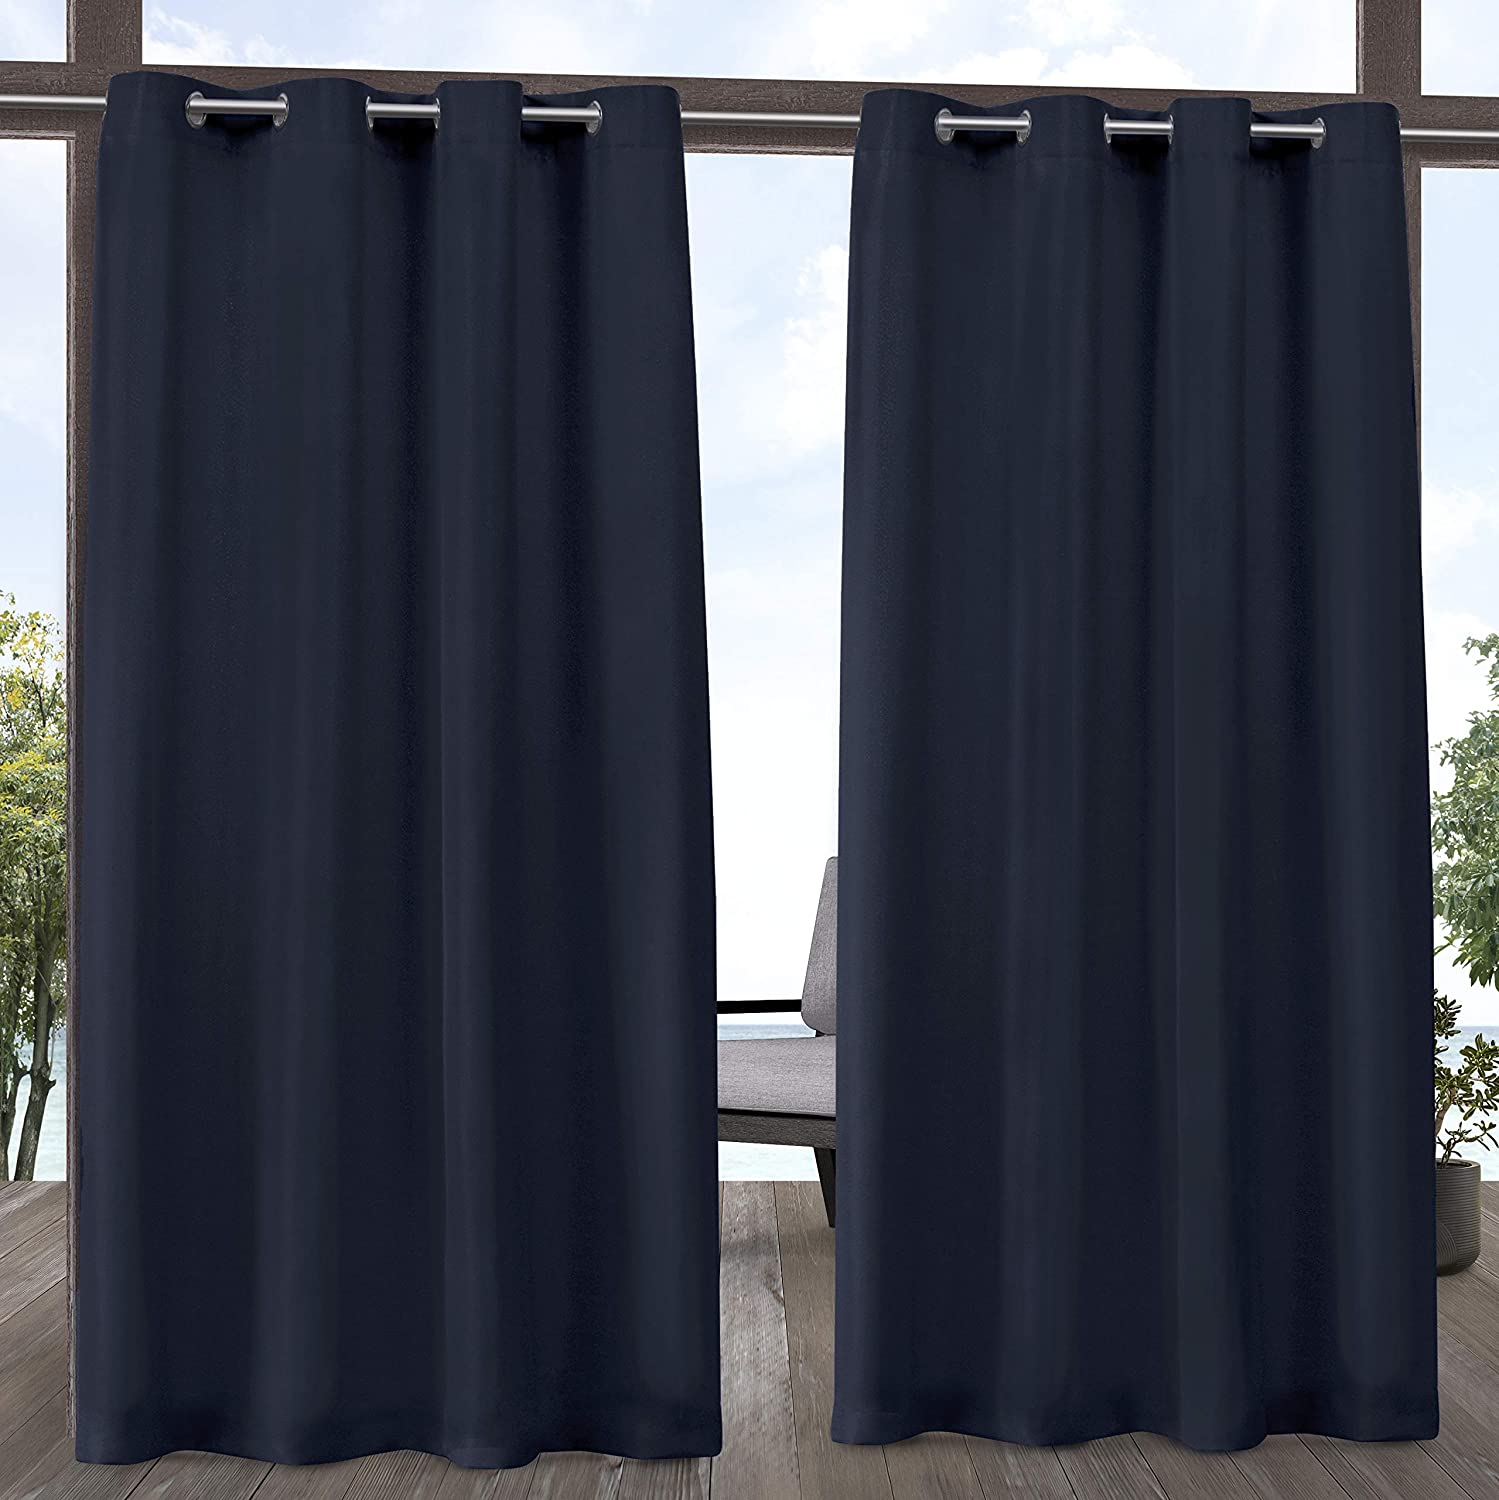 Exclusive Home Curtains EH8277-12 2-120G Indoor/Outdoor Solid Cabana Grommet Top Curtain Panel Pair, 54x120, Navy